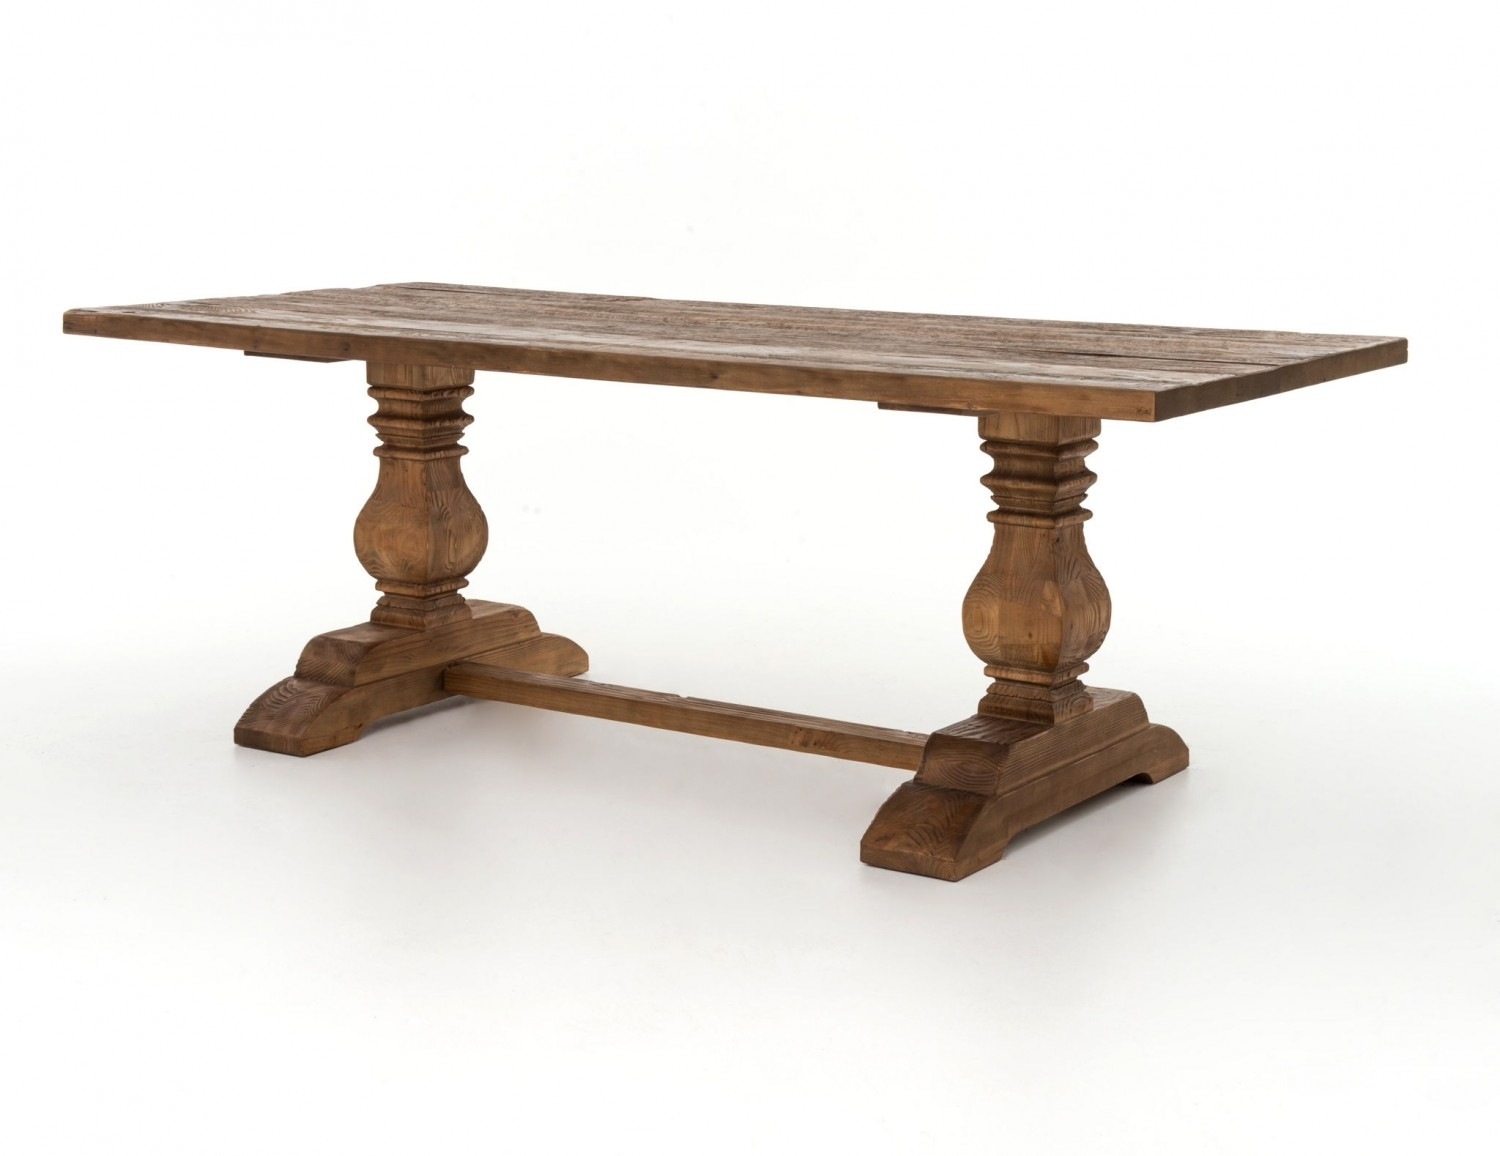 Durham Dining Table | Industrial Home Inside Current 87 Inch Dining Tables (View 13 of 20)